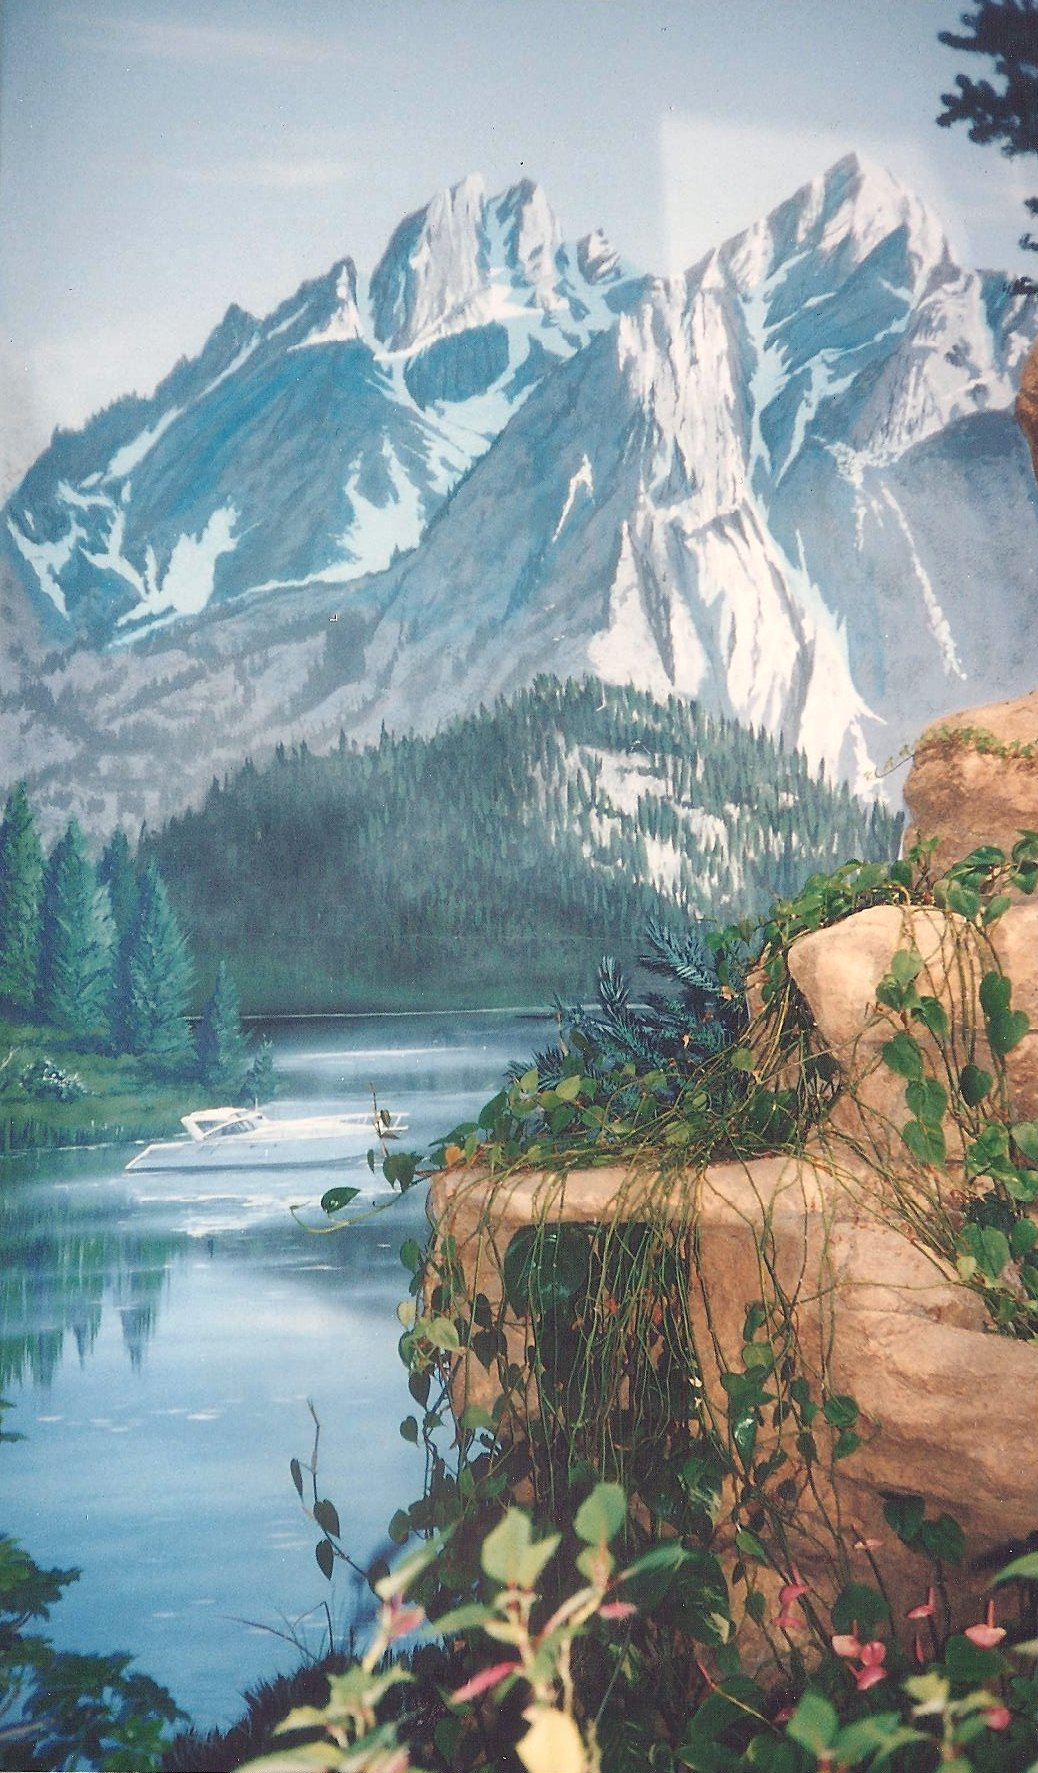 Residential bathroom mural of mountain lake by Paul Barker of Googleplex